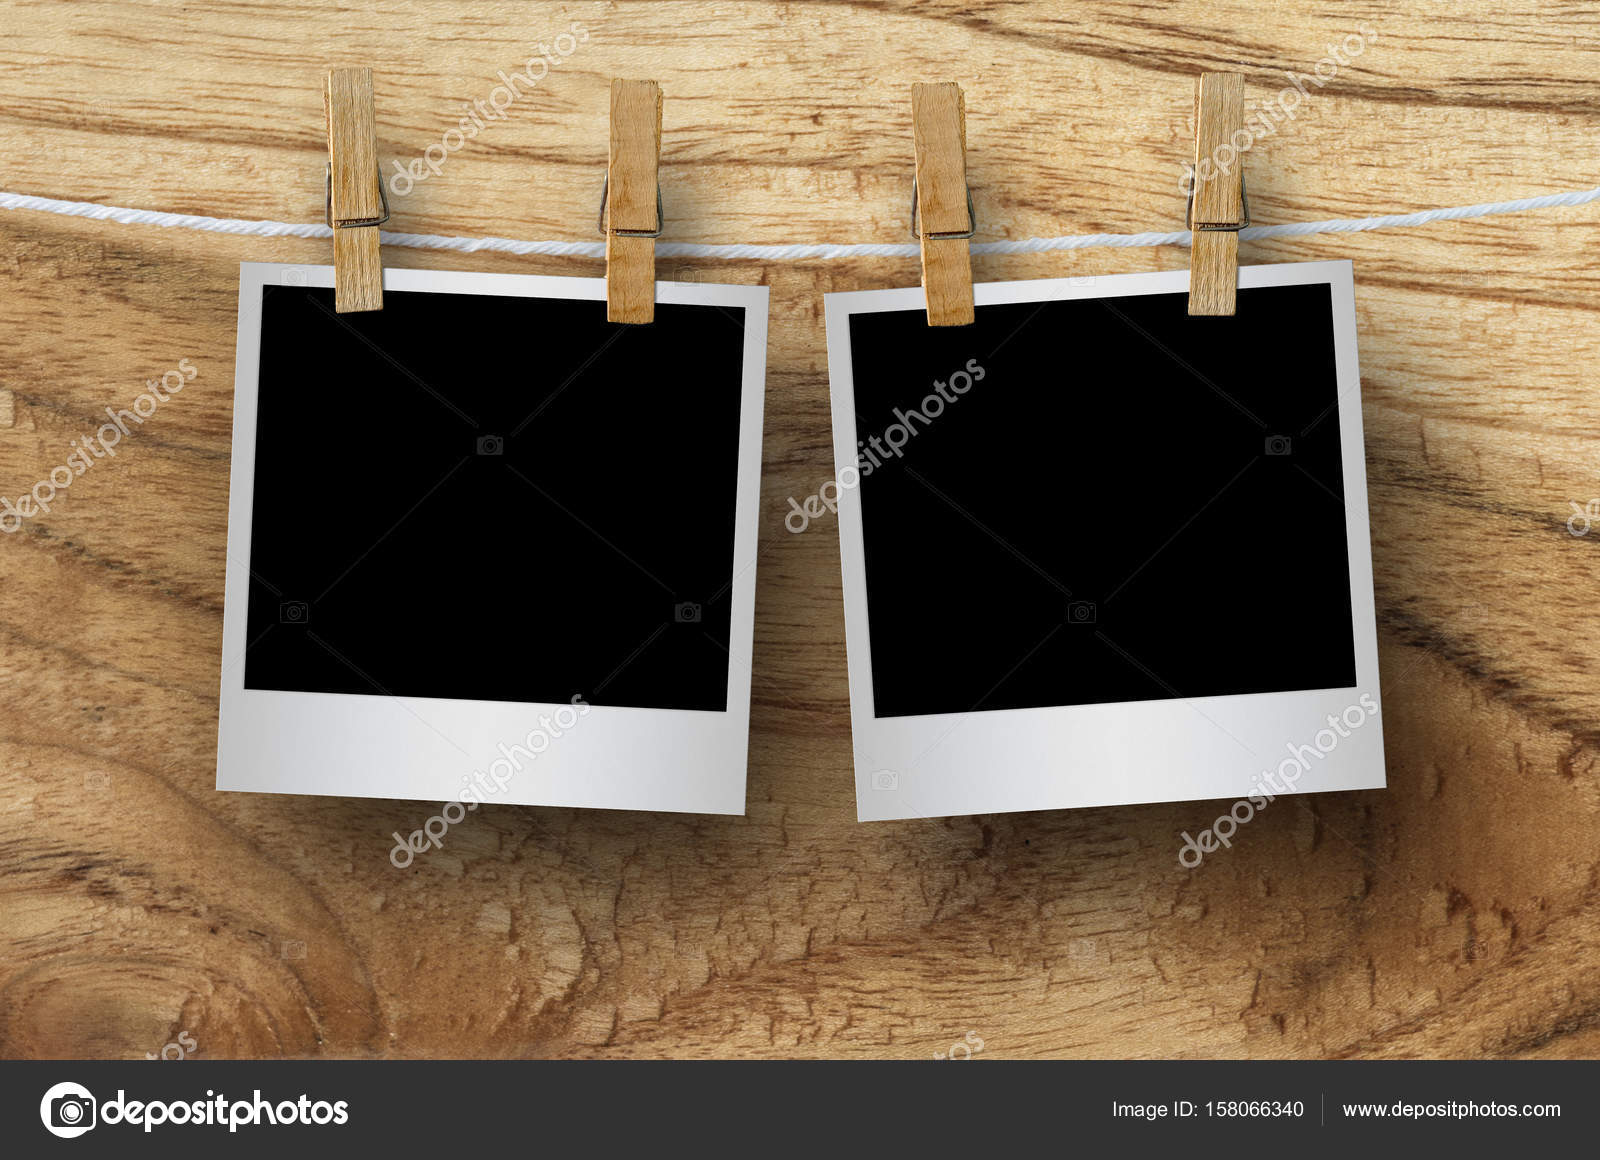 Blank photo frames with clothespins — Stock Photo © nirutdps #158066340